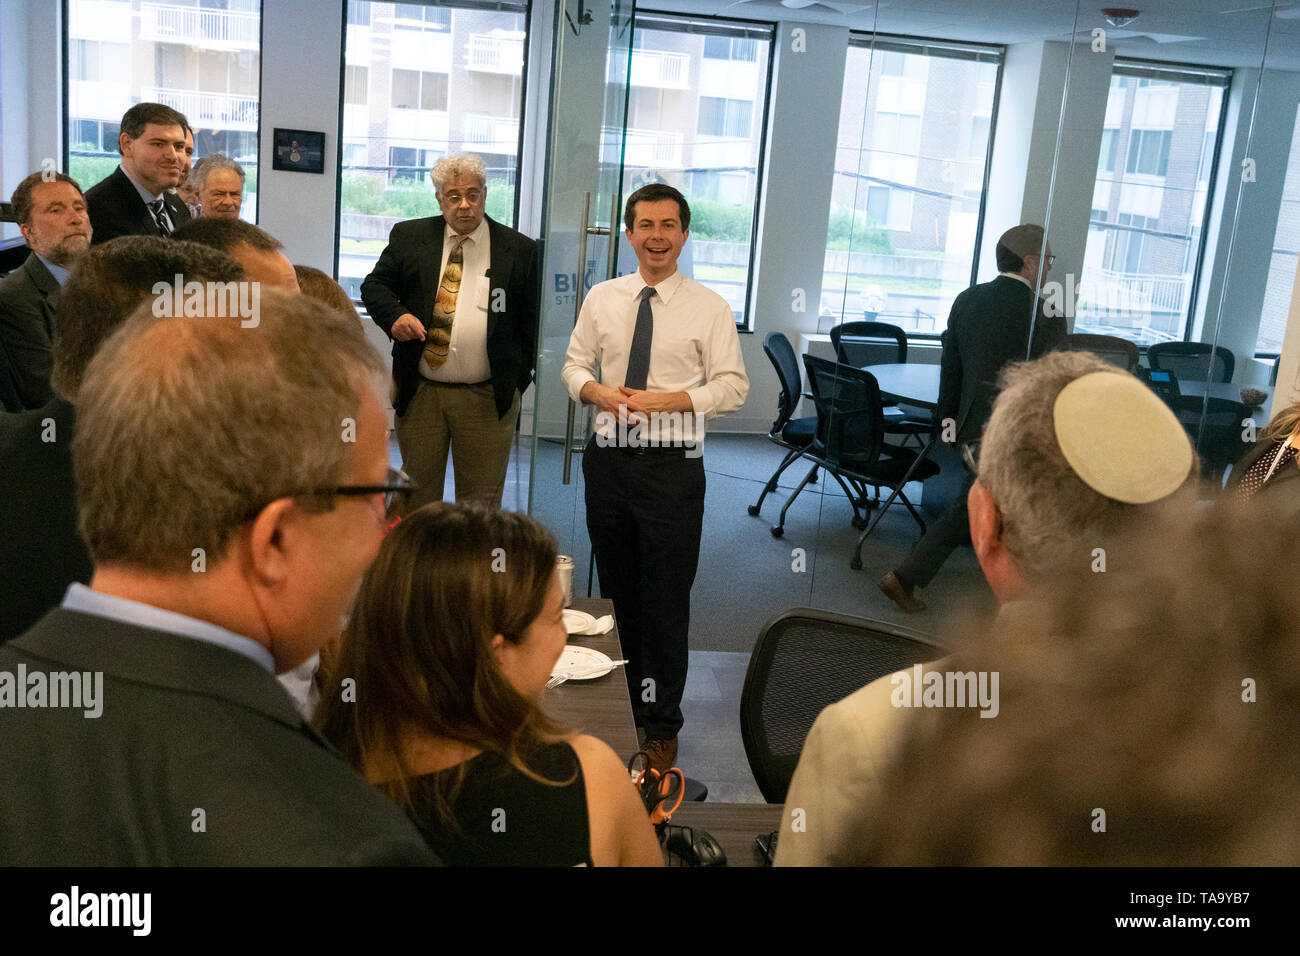 Mayor Pete Buttigieg meets with leaders of the Jewish community at a communal parlor meeting at the offices of Bluelight Strategies in Washington, DC, U.S. on May 23, 2019. Credit: Stefani Reynolds/CNP | usage worldwide Stock Photo